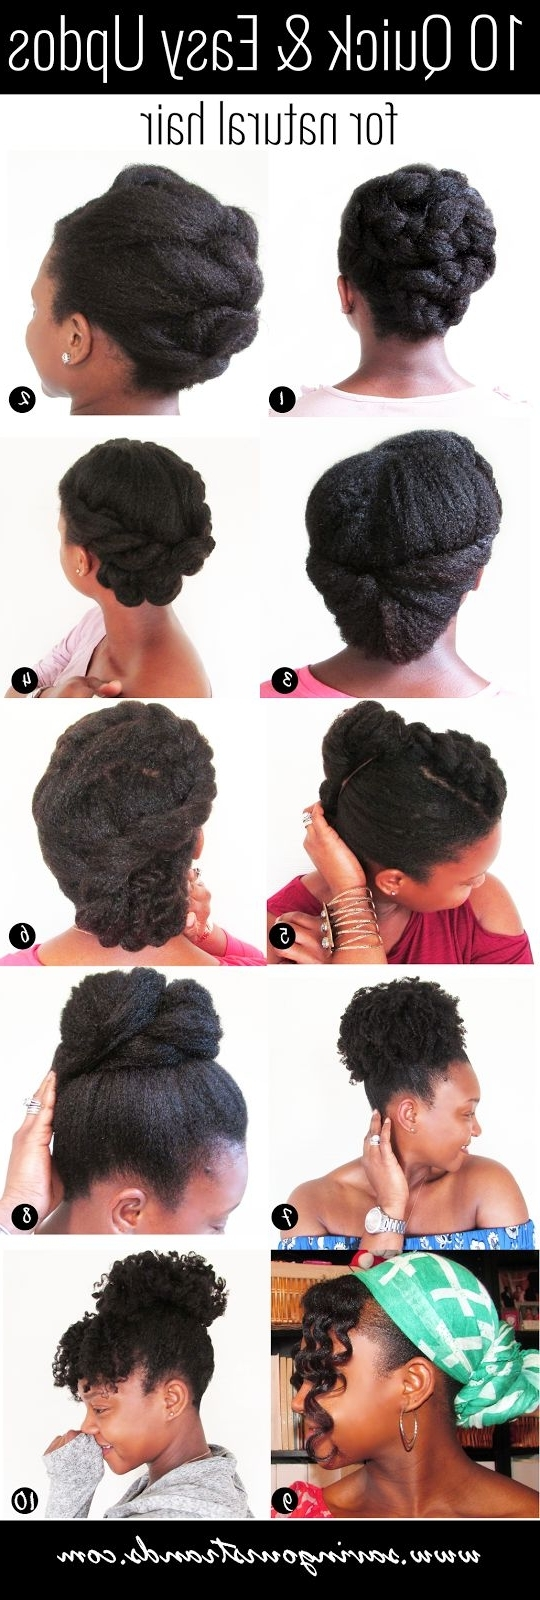 311 Best Short & Medium Natural Hair Styles Images On Pinterest Inside Quick Updos For Short Black Hair (View 5 of 15)